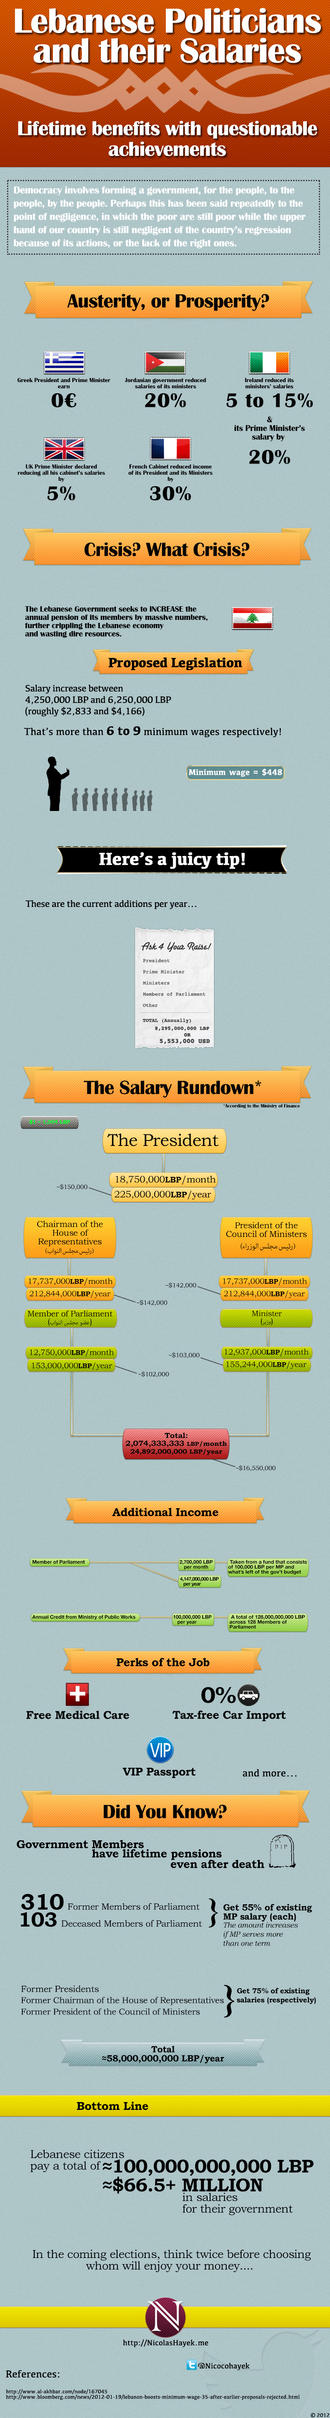 Lebanese Politicians and their Salaries by nicocohayek